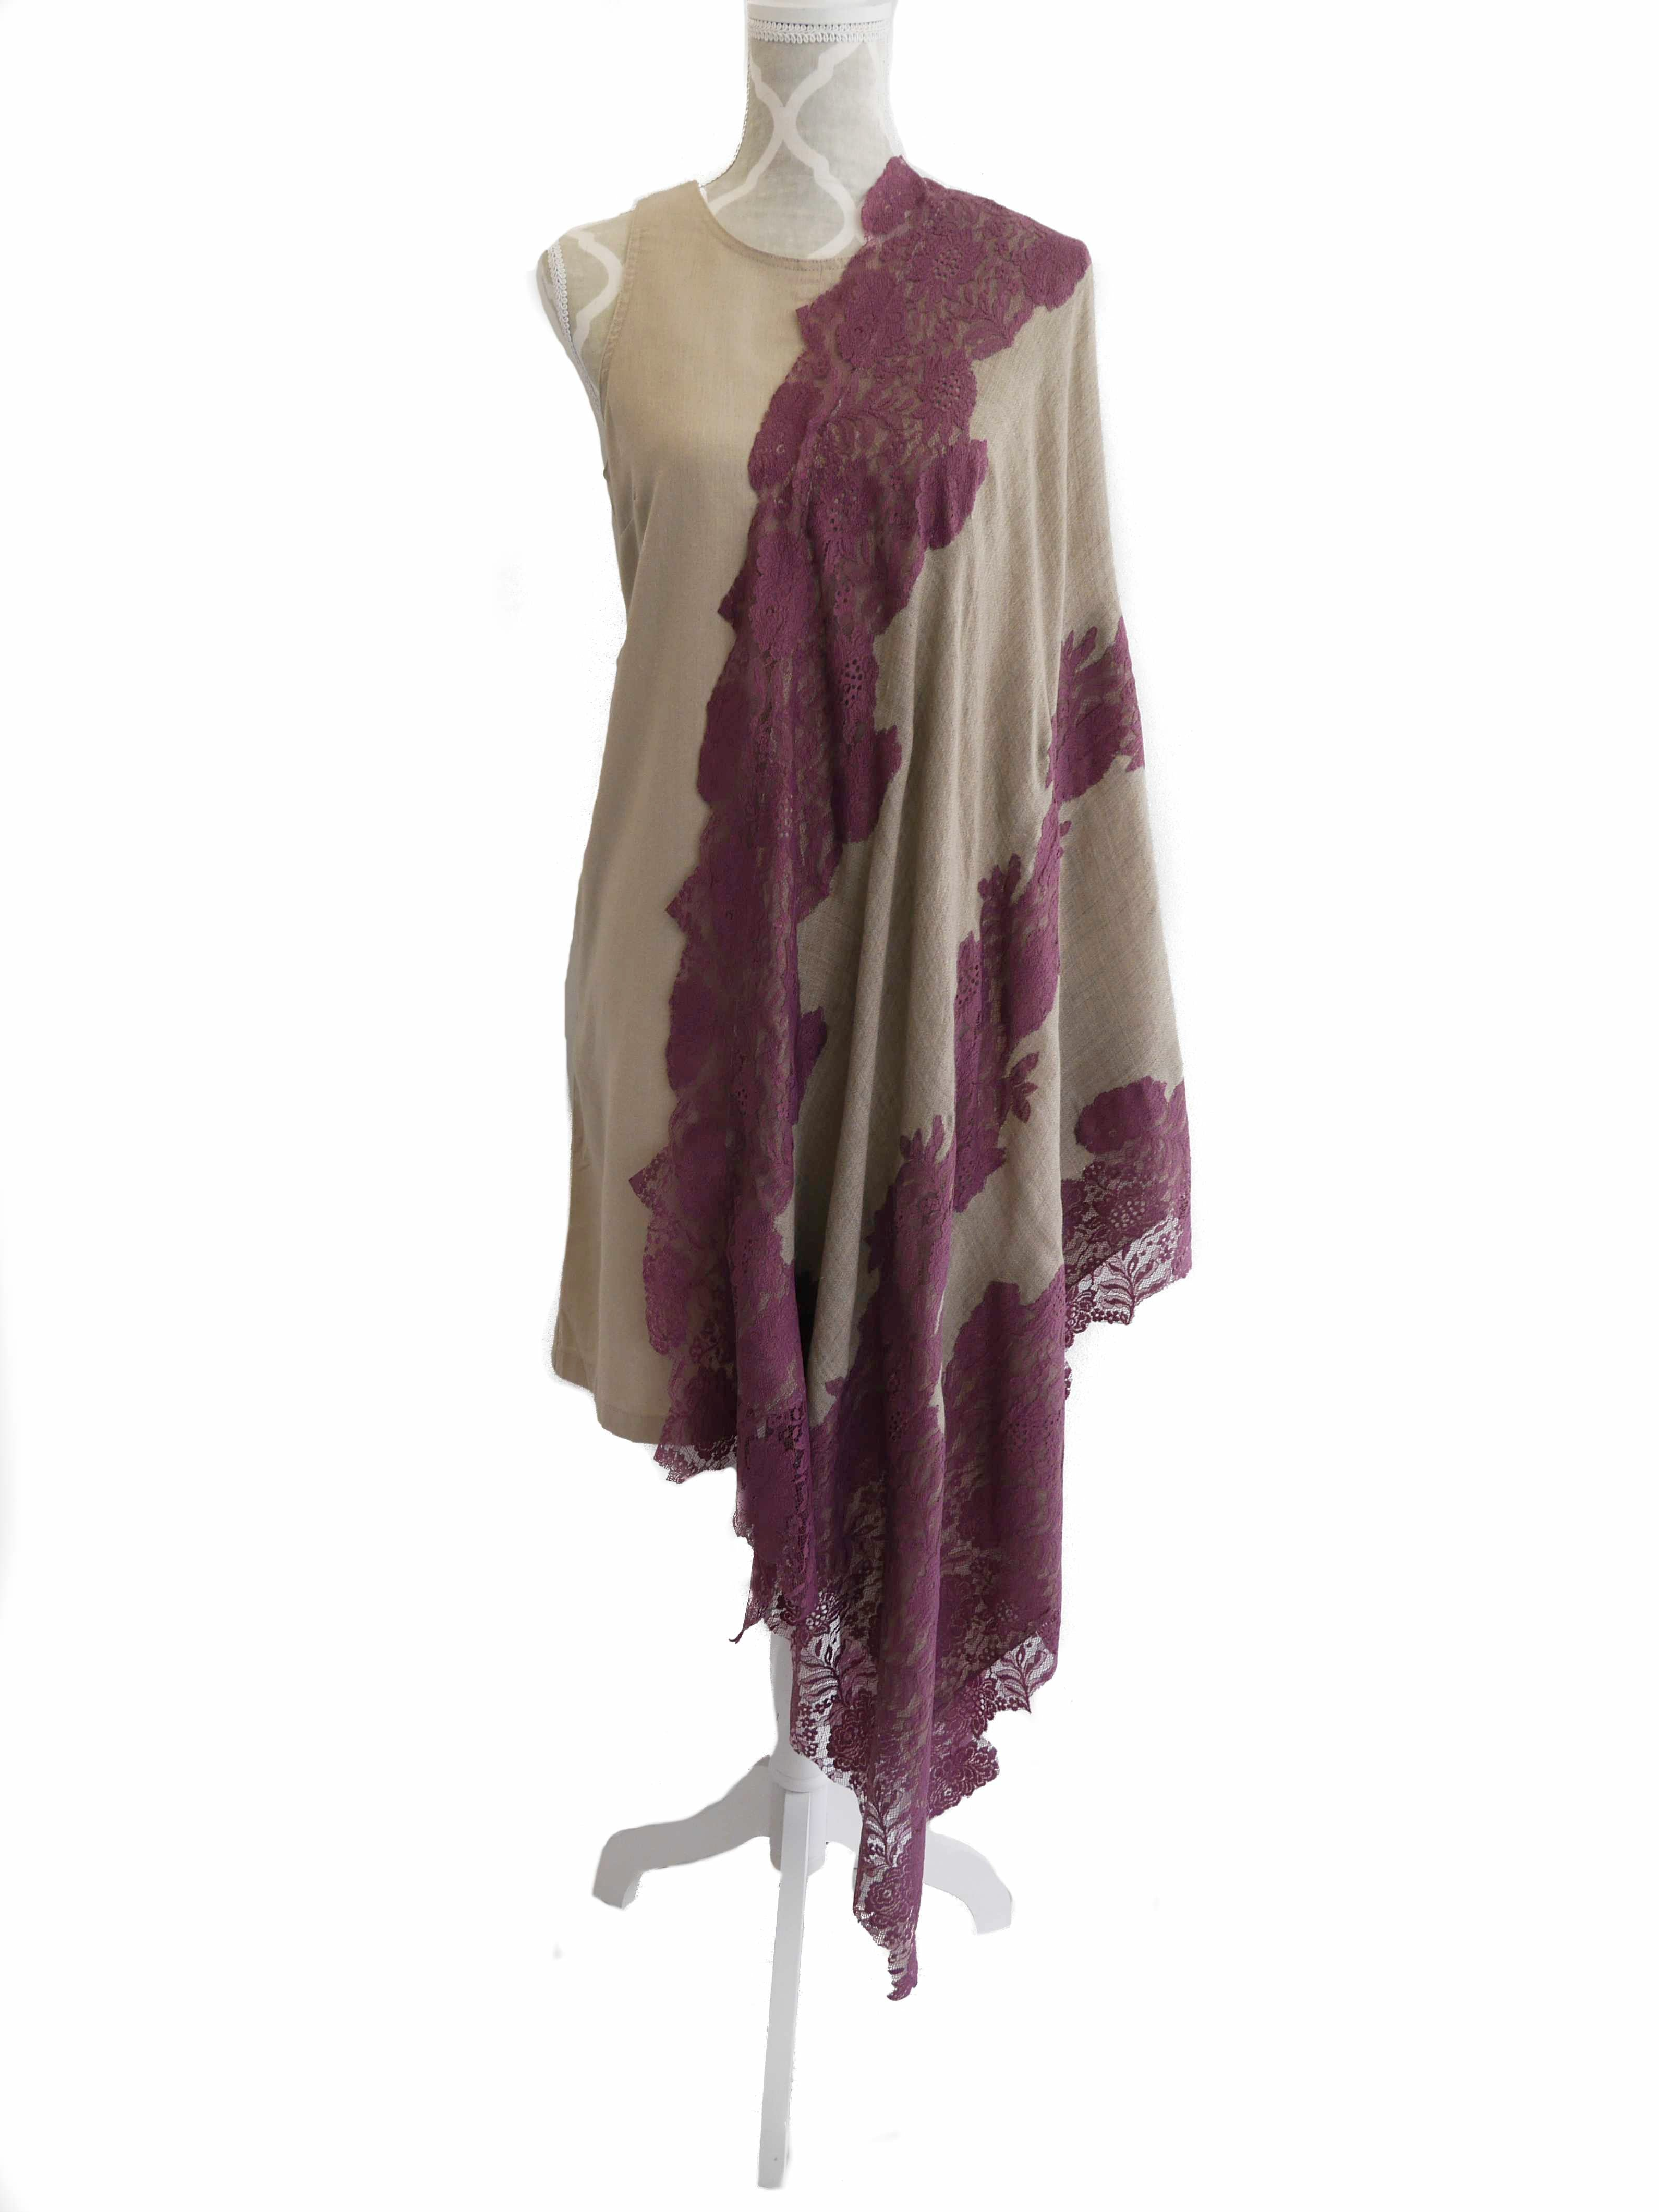 Large Cashmere and Lace Scarf